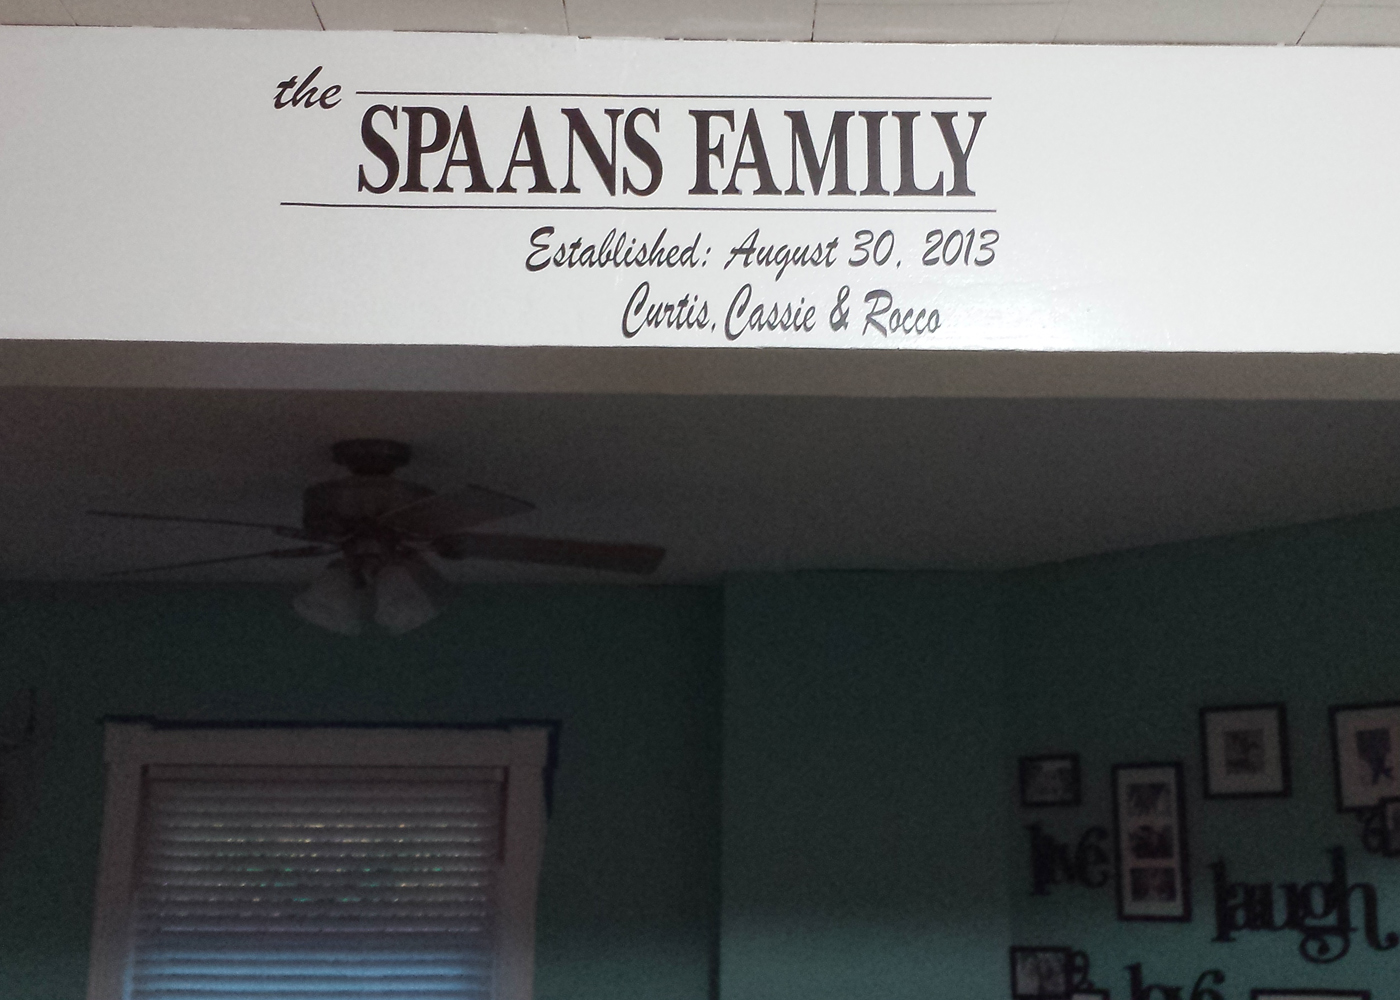 family-name-est-date-vinyl-wall-decal-personalized.jpg